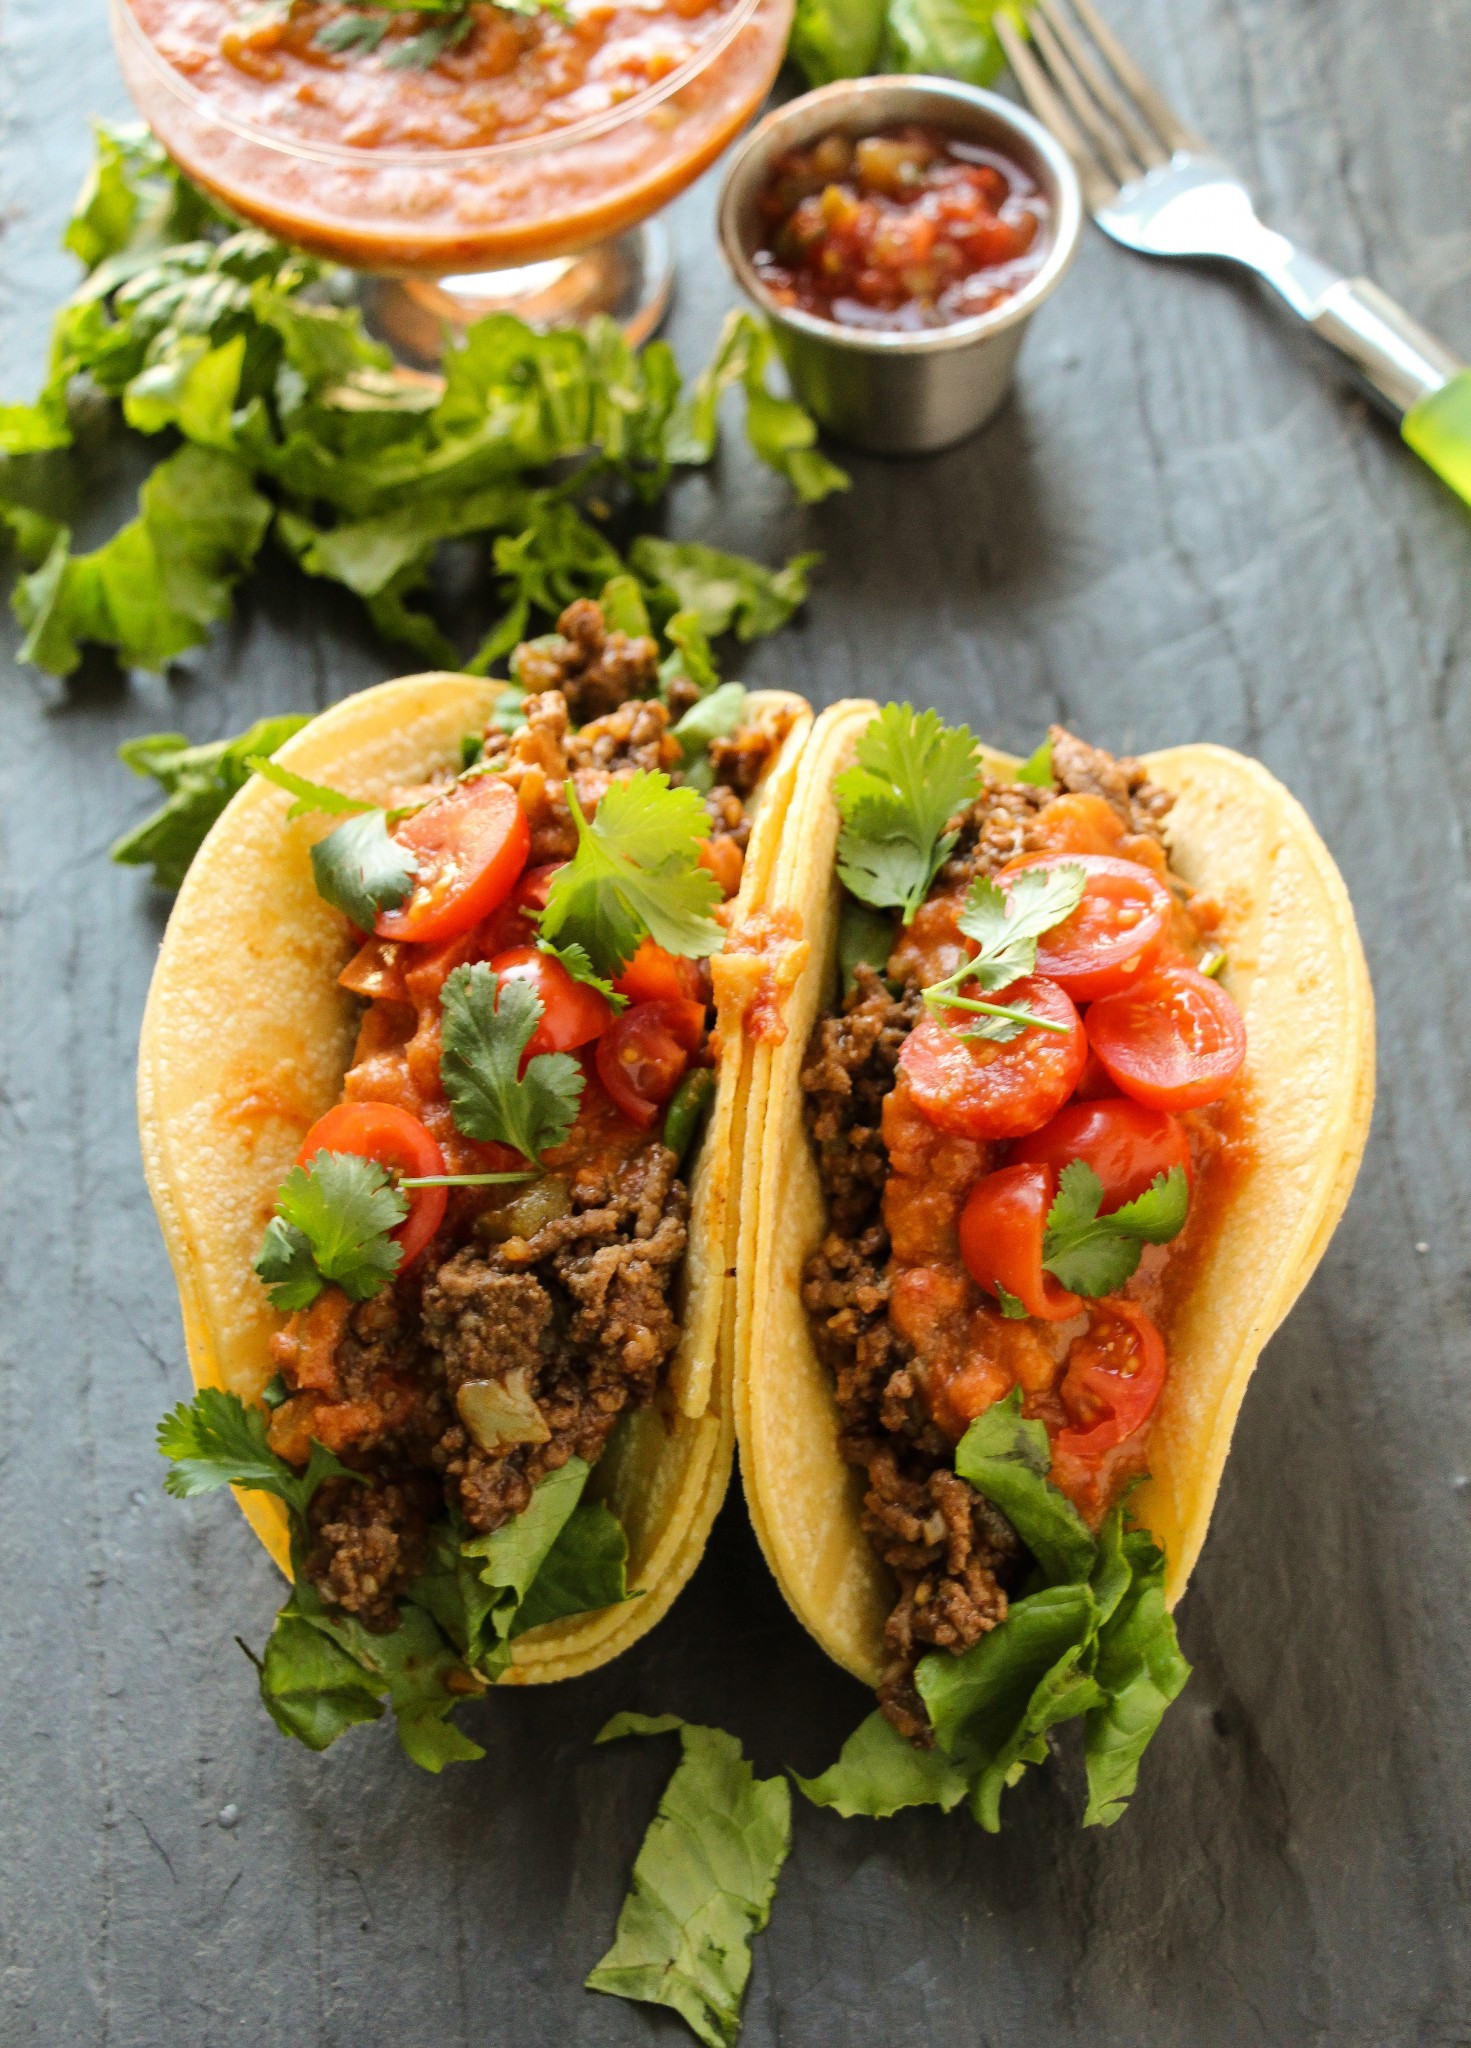 Ground Beef Taco Recipe  Ground Beef Tacos with Loaded Refried Bean Sauce Layers